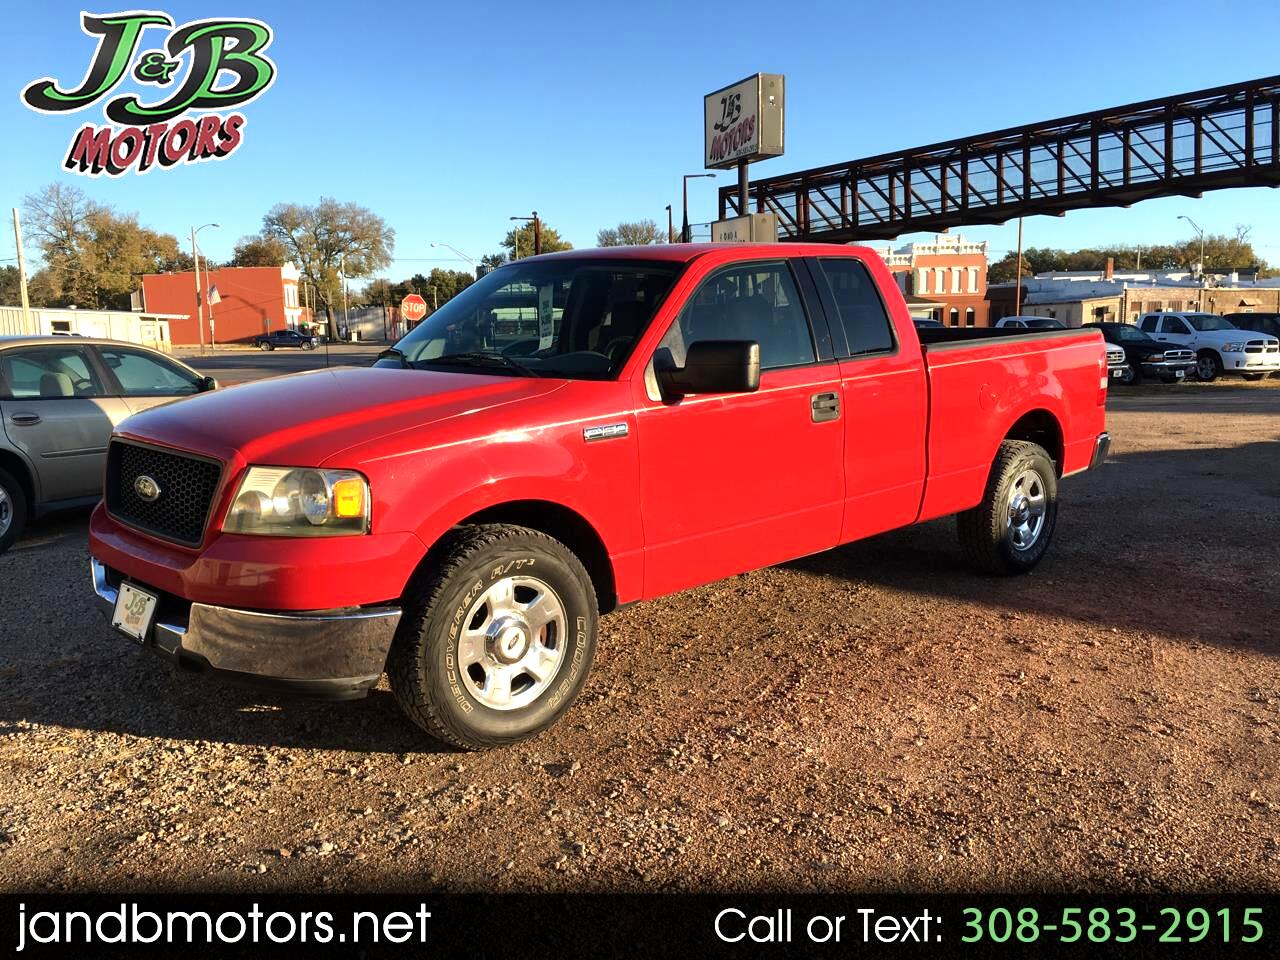 2004 Ford F-150 XLT SuperCab 2WD